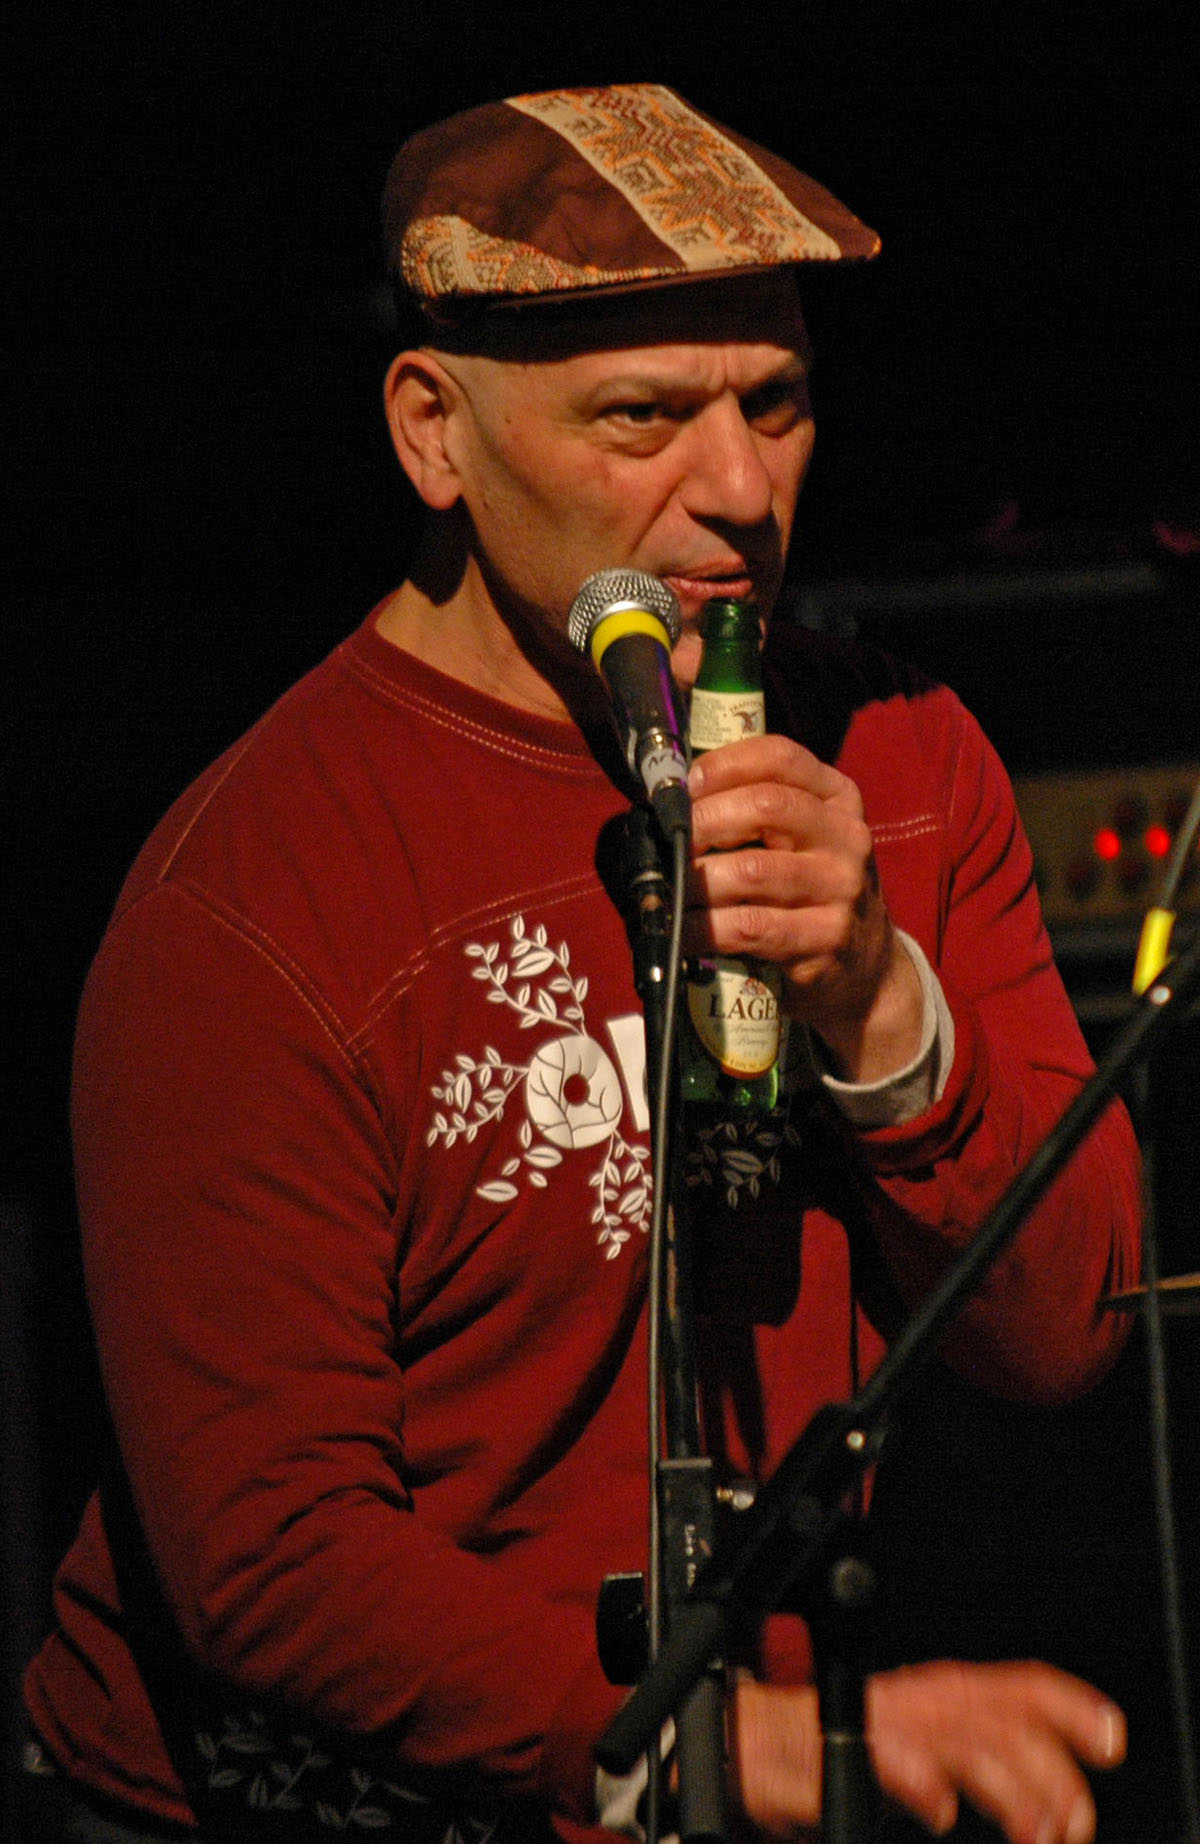 Arto Tuncboyaciyan, Performing in the John McLaughlin Tribute at the 2010 New Universe Music Festival